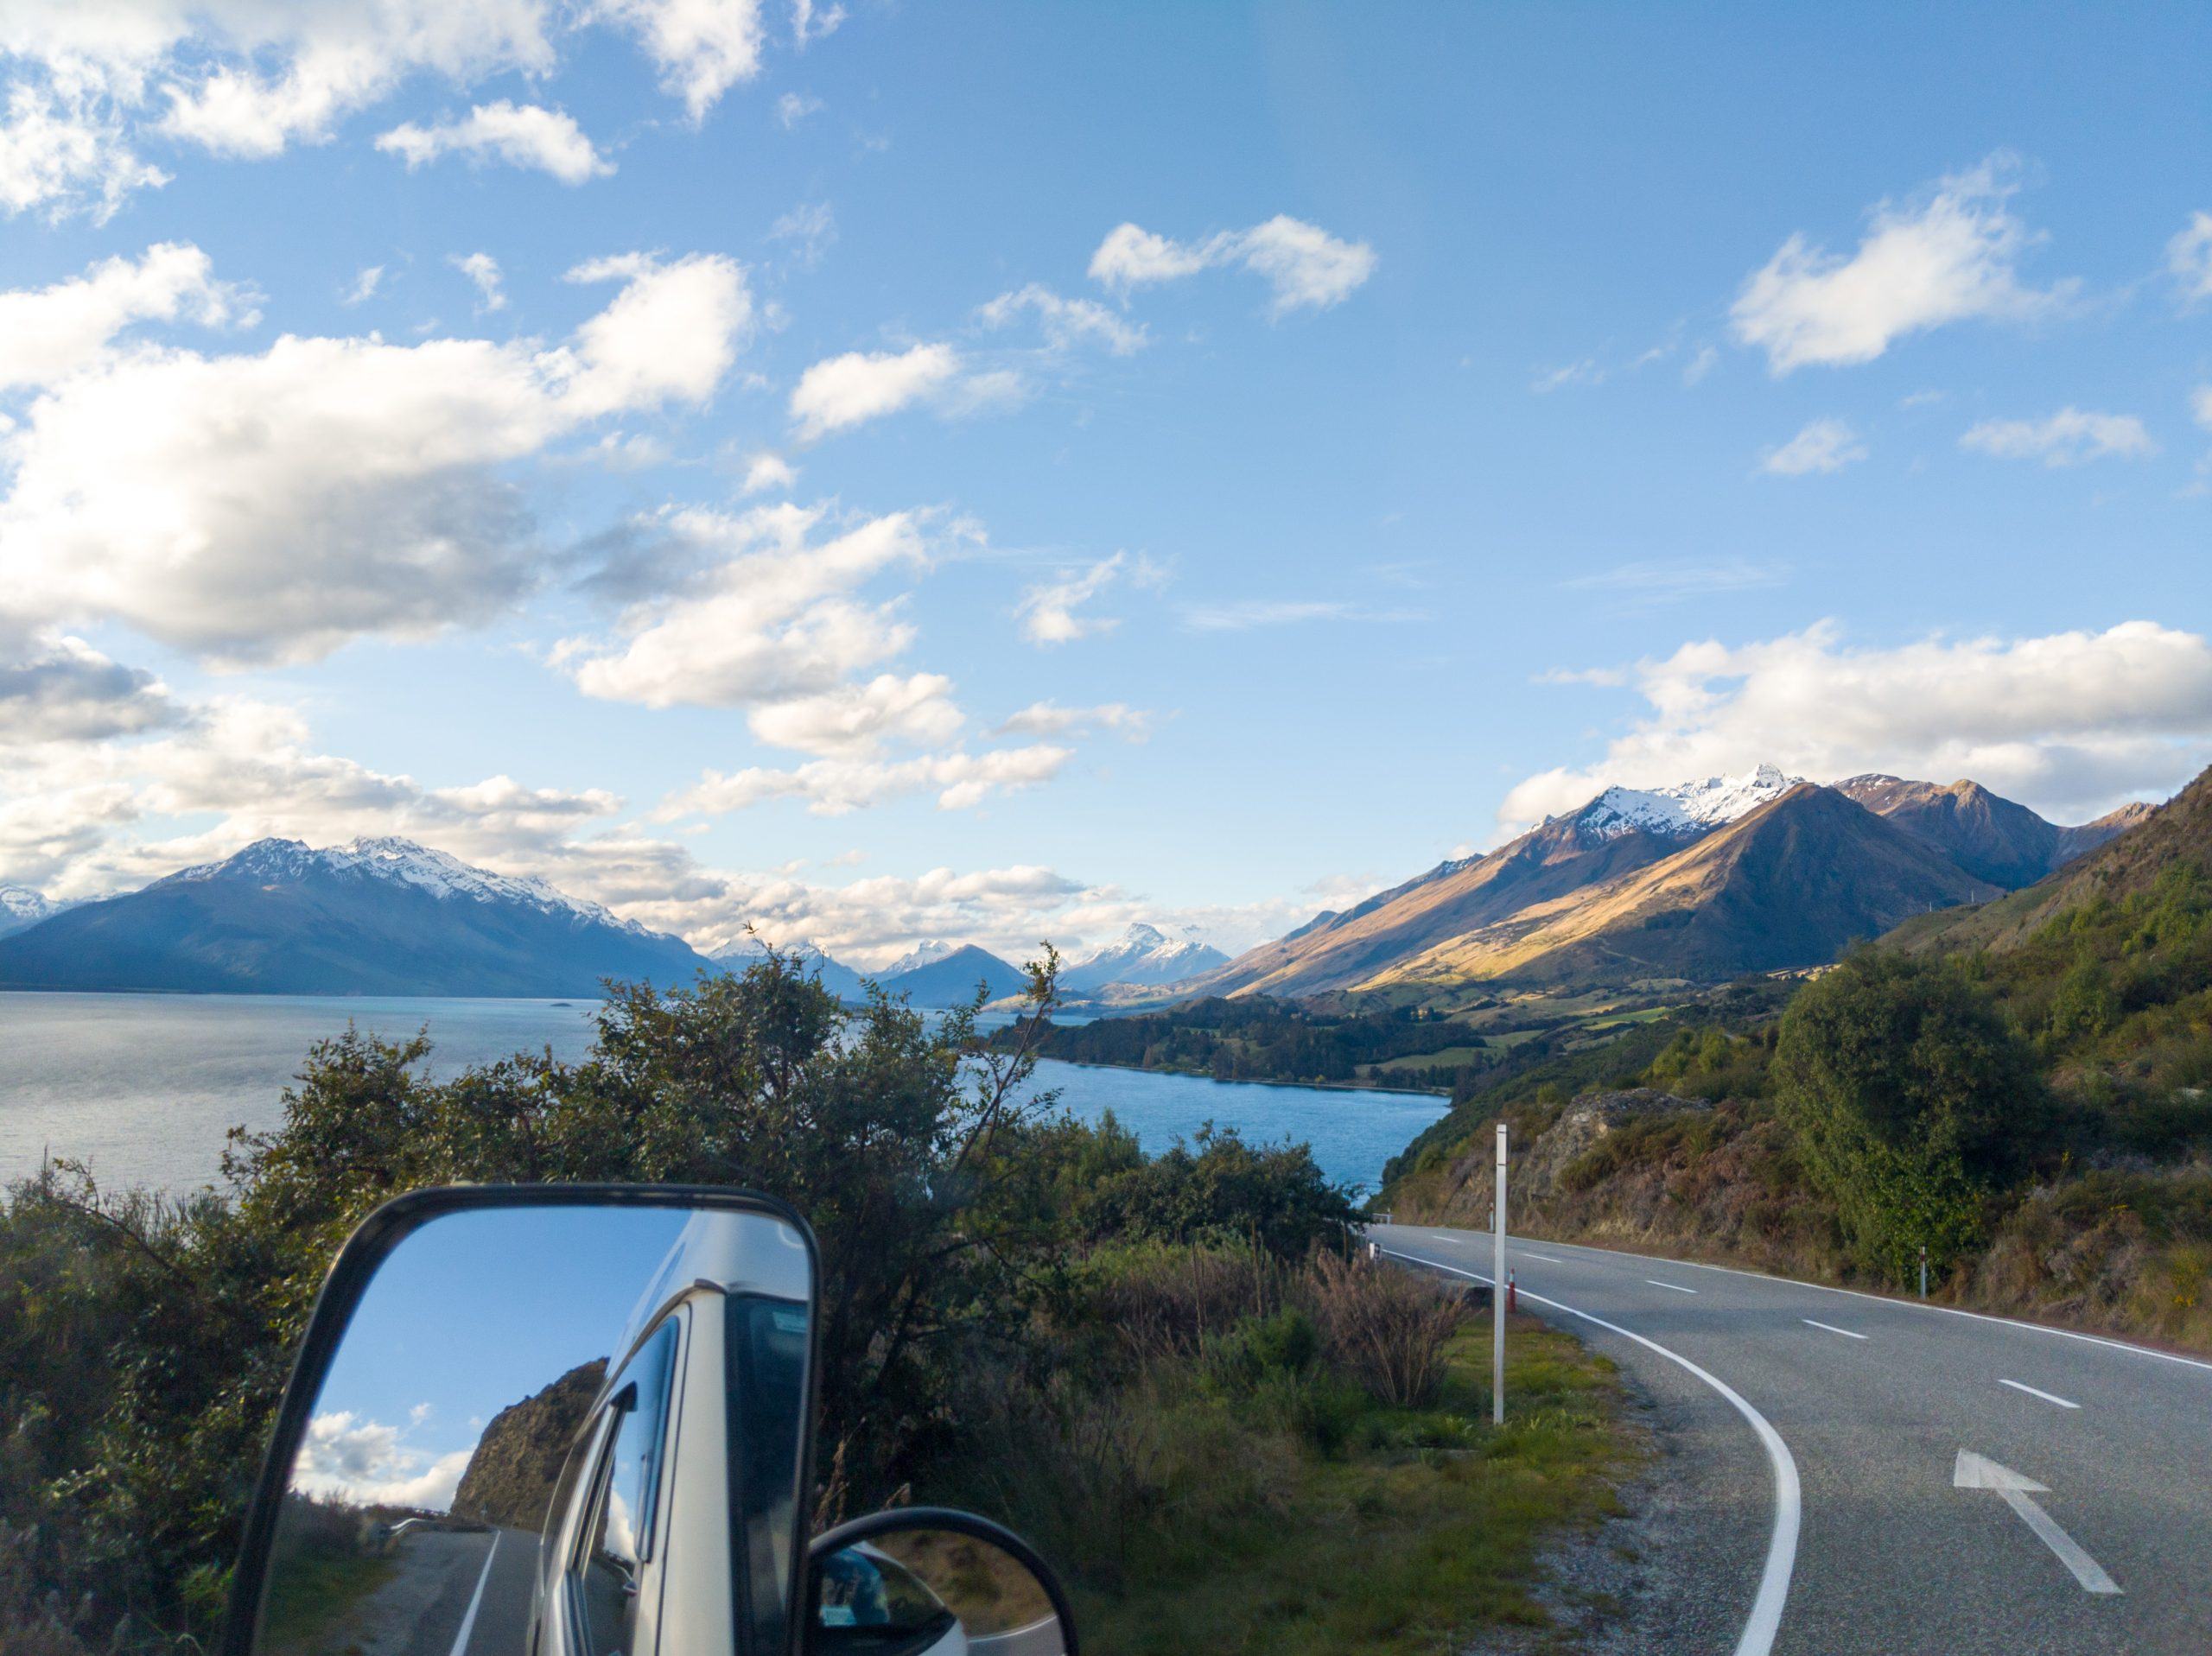 Campervan driving the Queenstown - Glenorchy Road